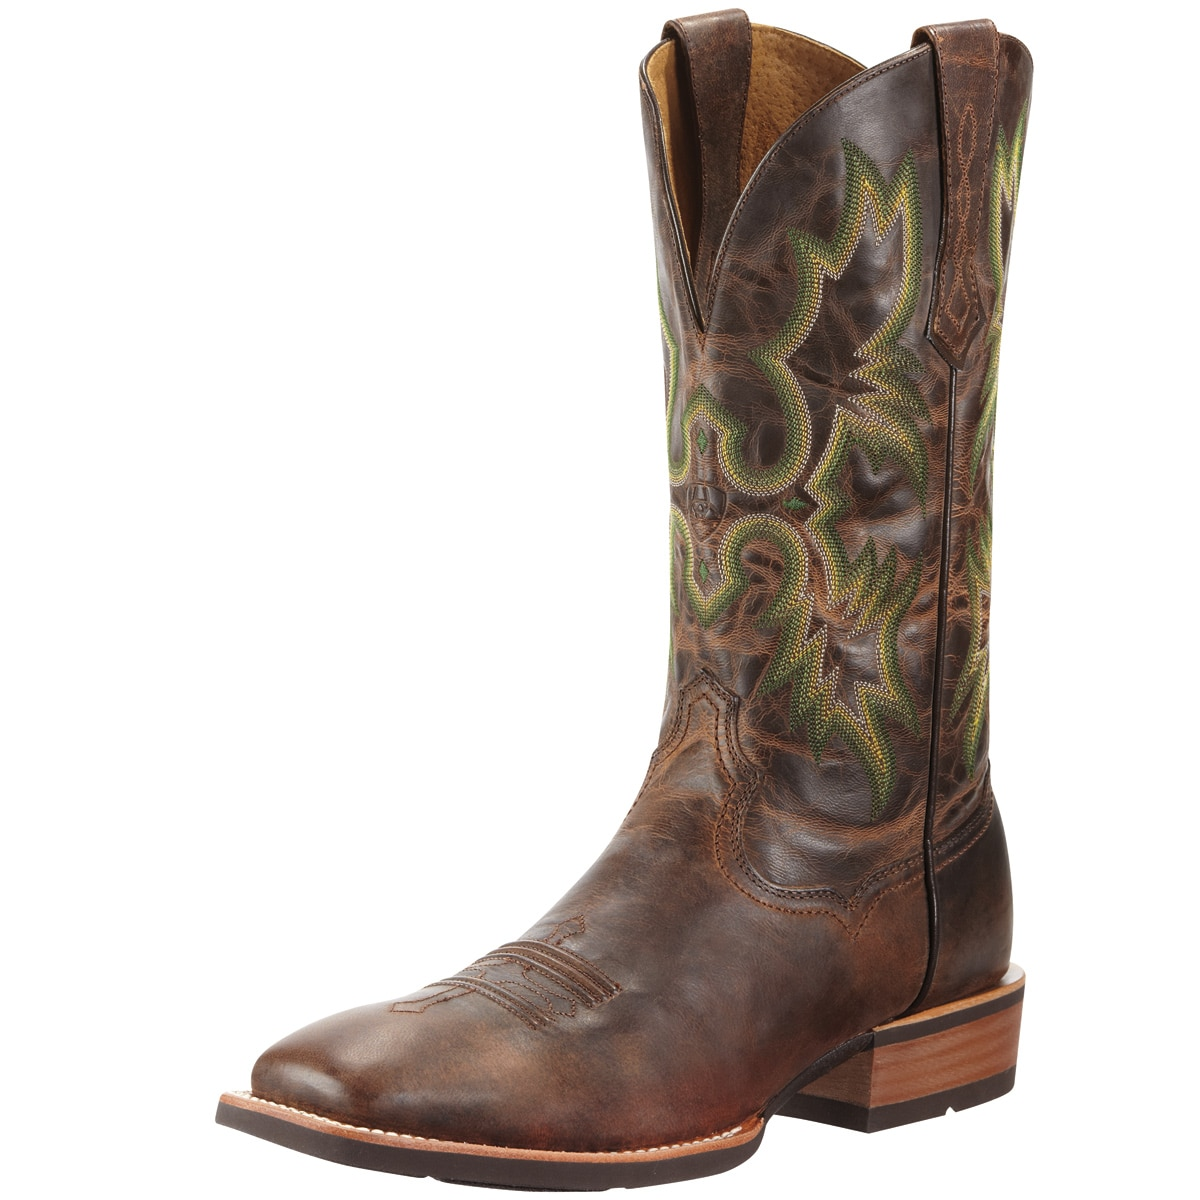 Ariat Men's Tombstone Boot - Weathered Chestnut